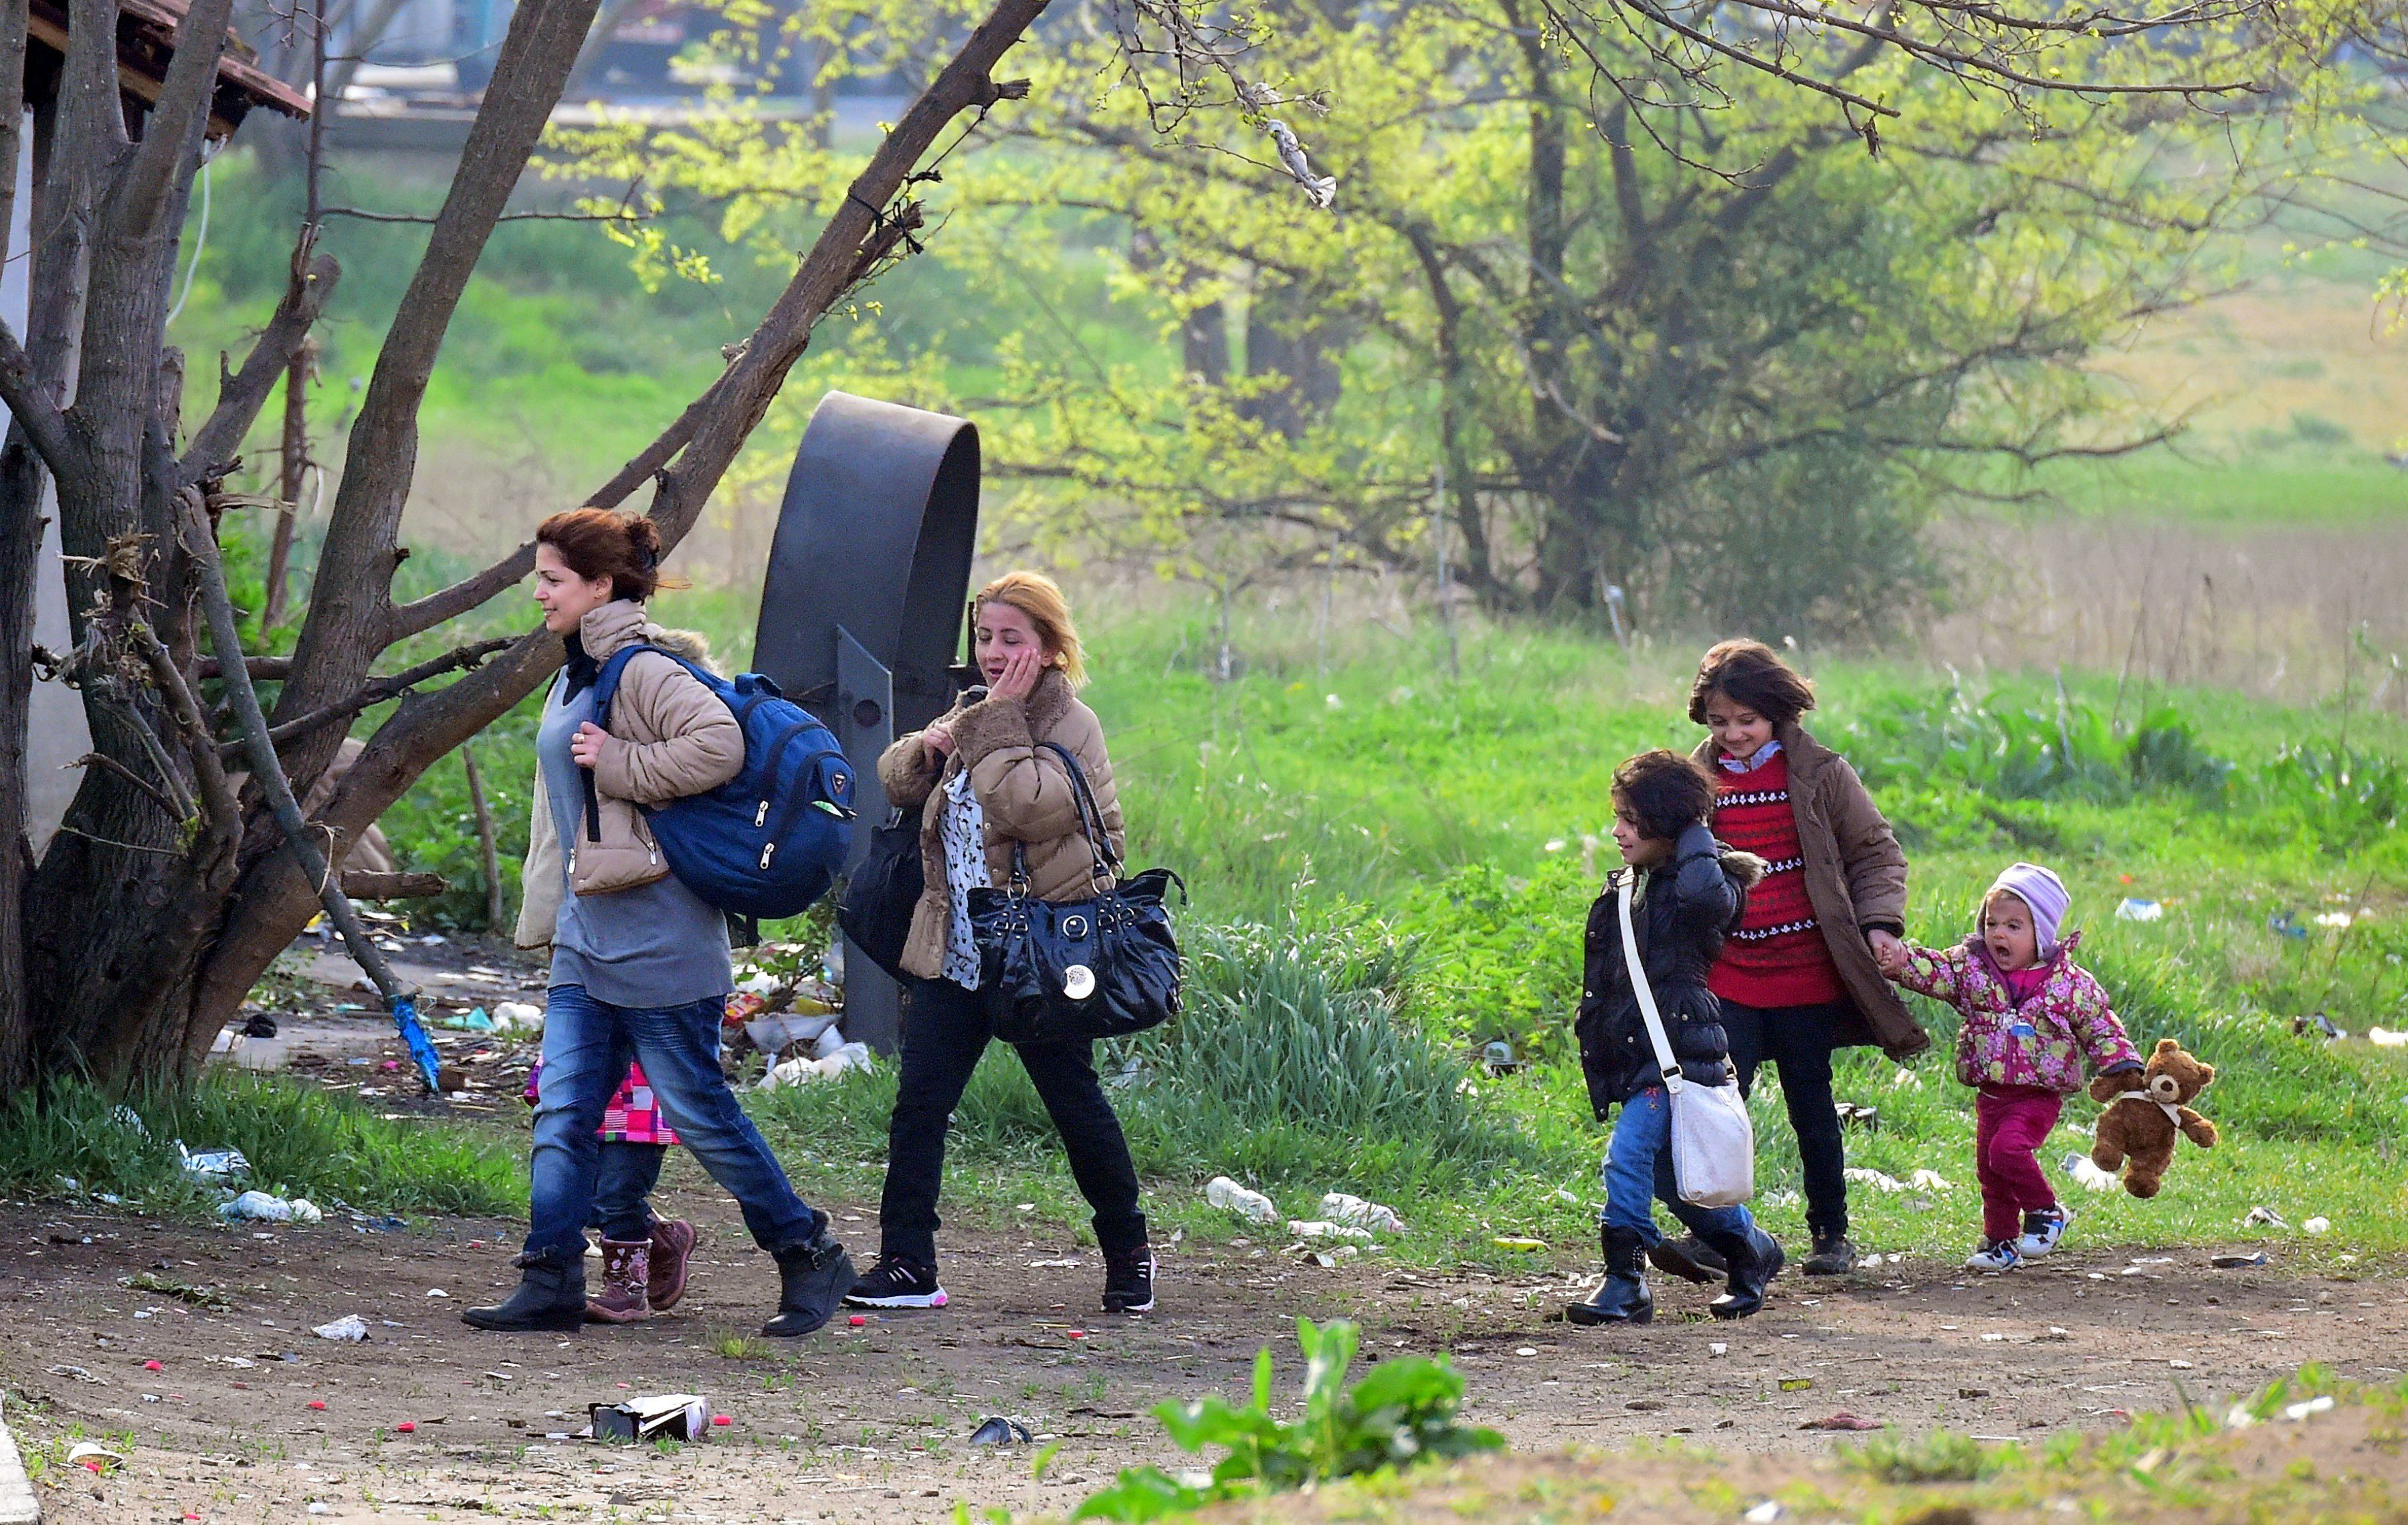 A Syrian family carry their belongings through the forest near the Hungarian border fence at the Tompa border station transit zone on April 6, 2017 as the Hungarian Interior Minister Sandor Pinter (not pictured) presented the camp to the media.   The migrant transit complex on the Hungarian side of the border has been expanded to become one of two new detention centers for asylum seekers in the Hungarian transit zone and contains shipping containers that are used to automatically detain migrants in the transit zone while their claims are investigated.   / AFP PHOTO / ATTILA KISBENEDEK        (Photo credit should read ATTILA KISBENEDEK/AFP/Getty Images)